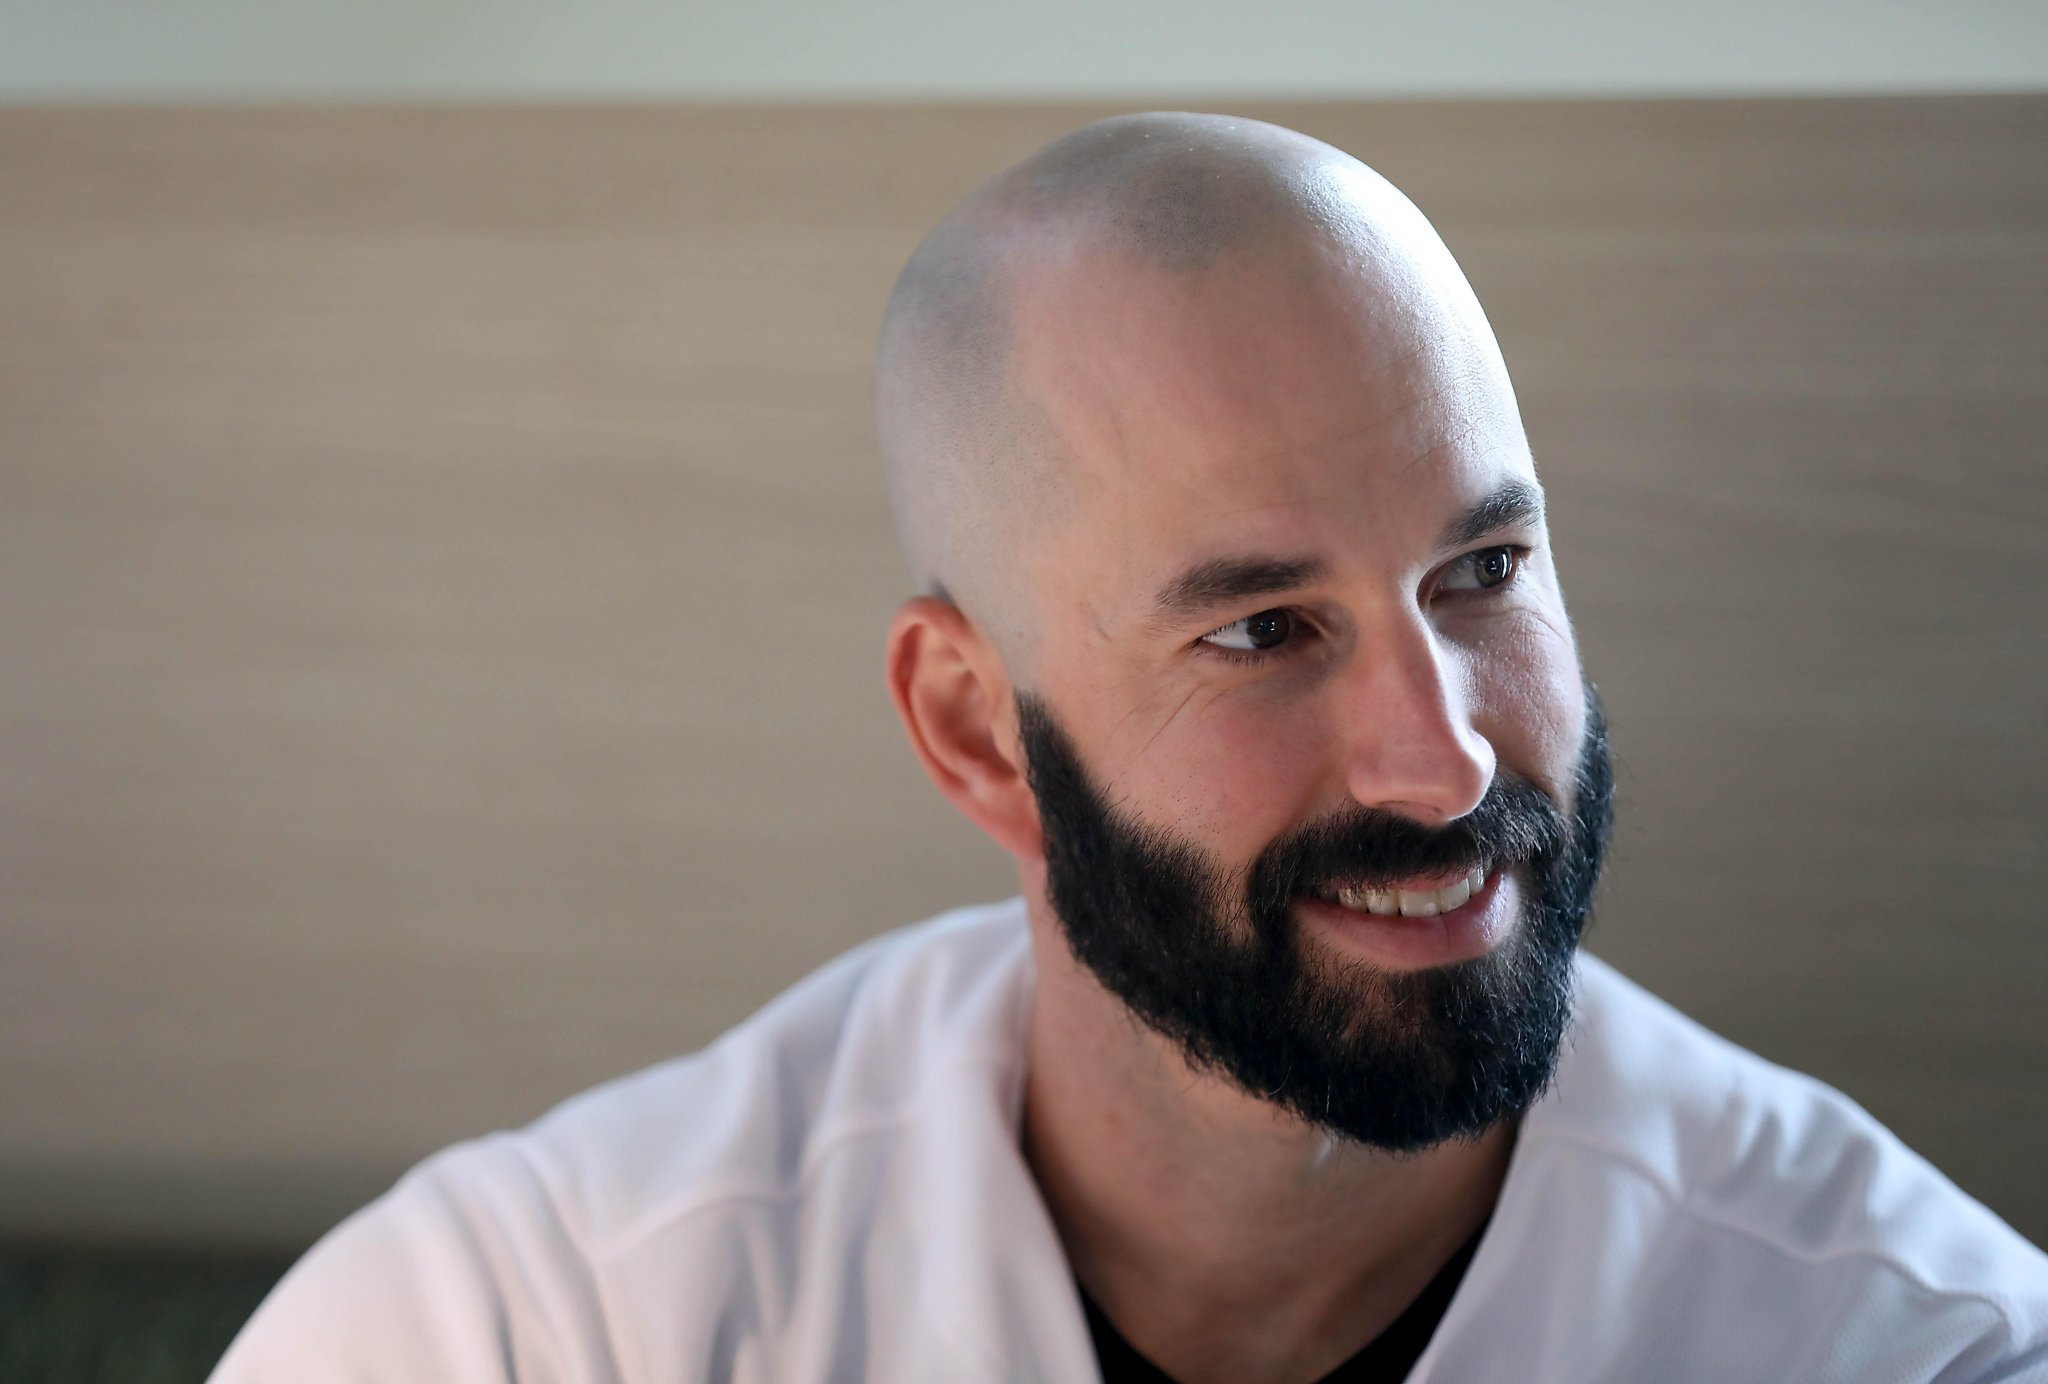 Astros questions asked, but Oakland A's pitcher Mike Fiers goes silent